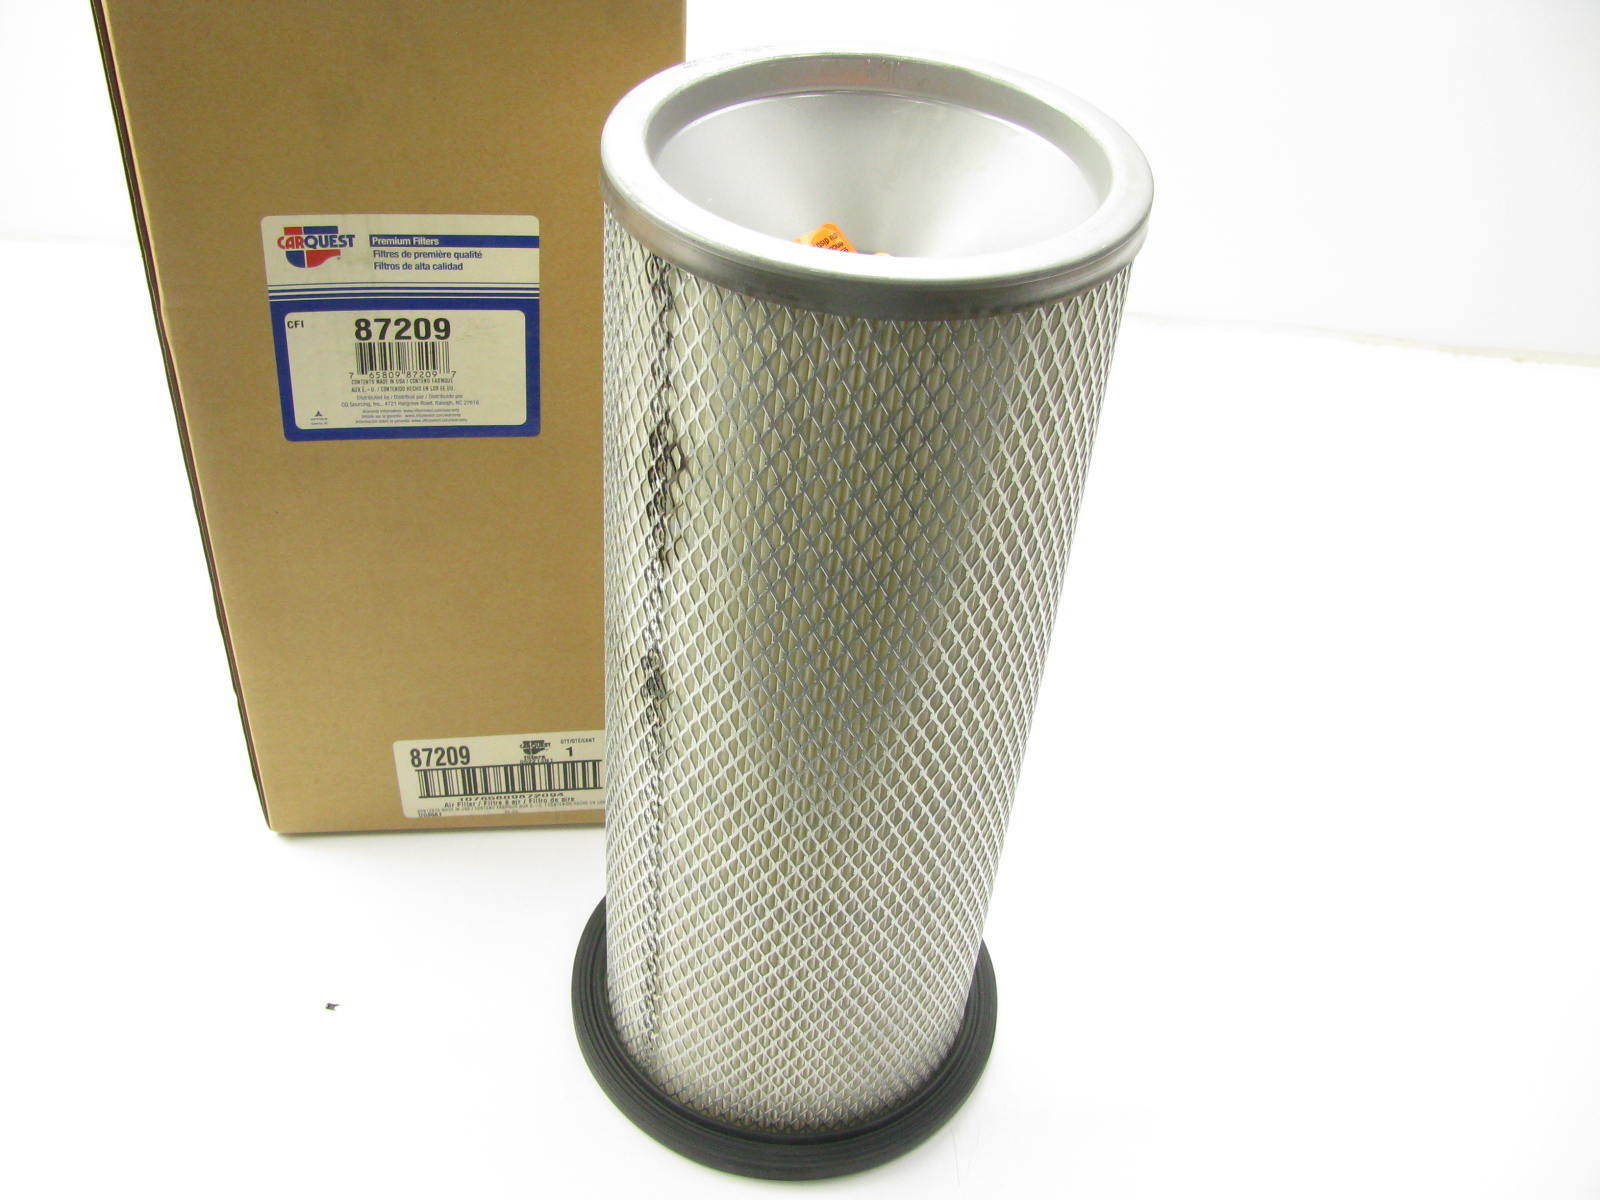 Carquest 87209 Air Filter Replaces 42209 A62200 LAF9373 AF1904M 1600x1200